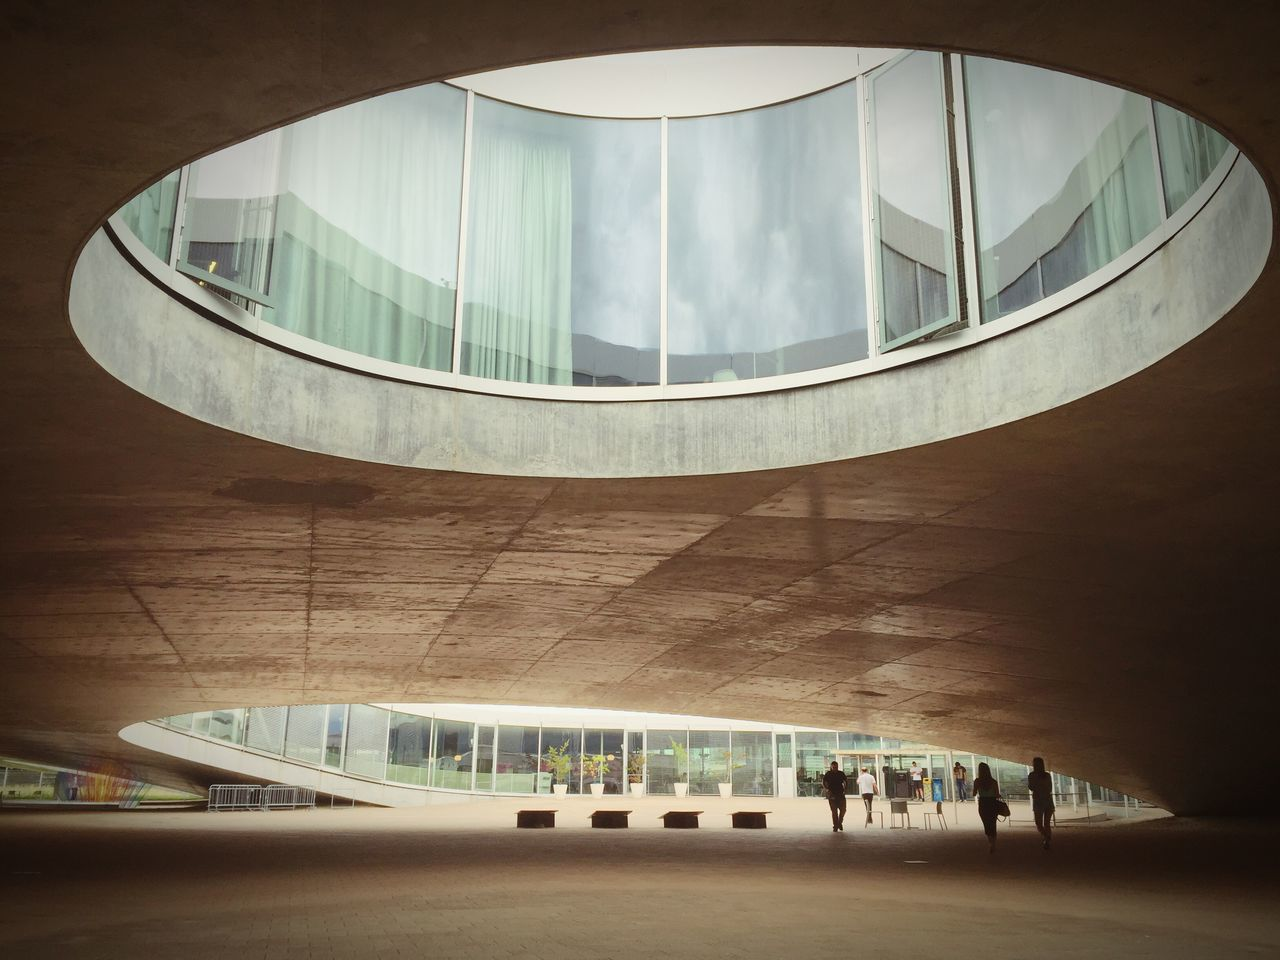 architecture, built structure, indoors, ceiling, illuminated, modern, travel destinations, real people, city, day